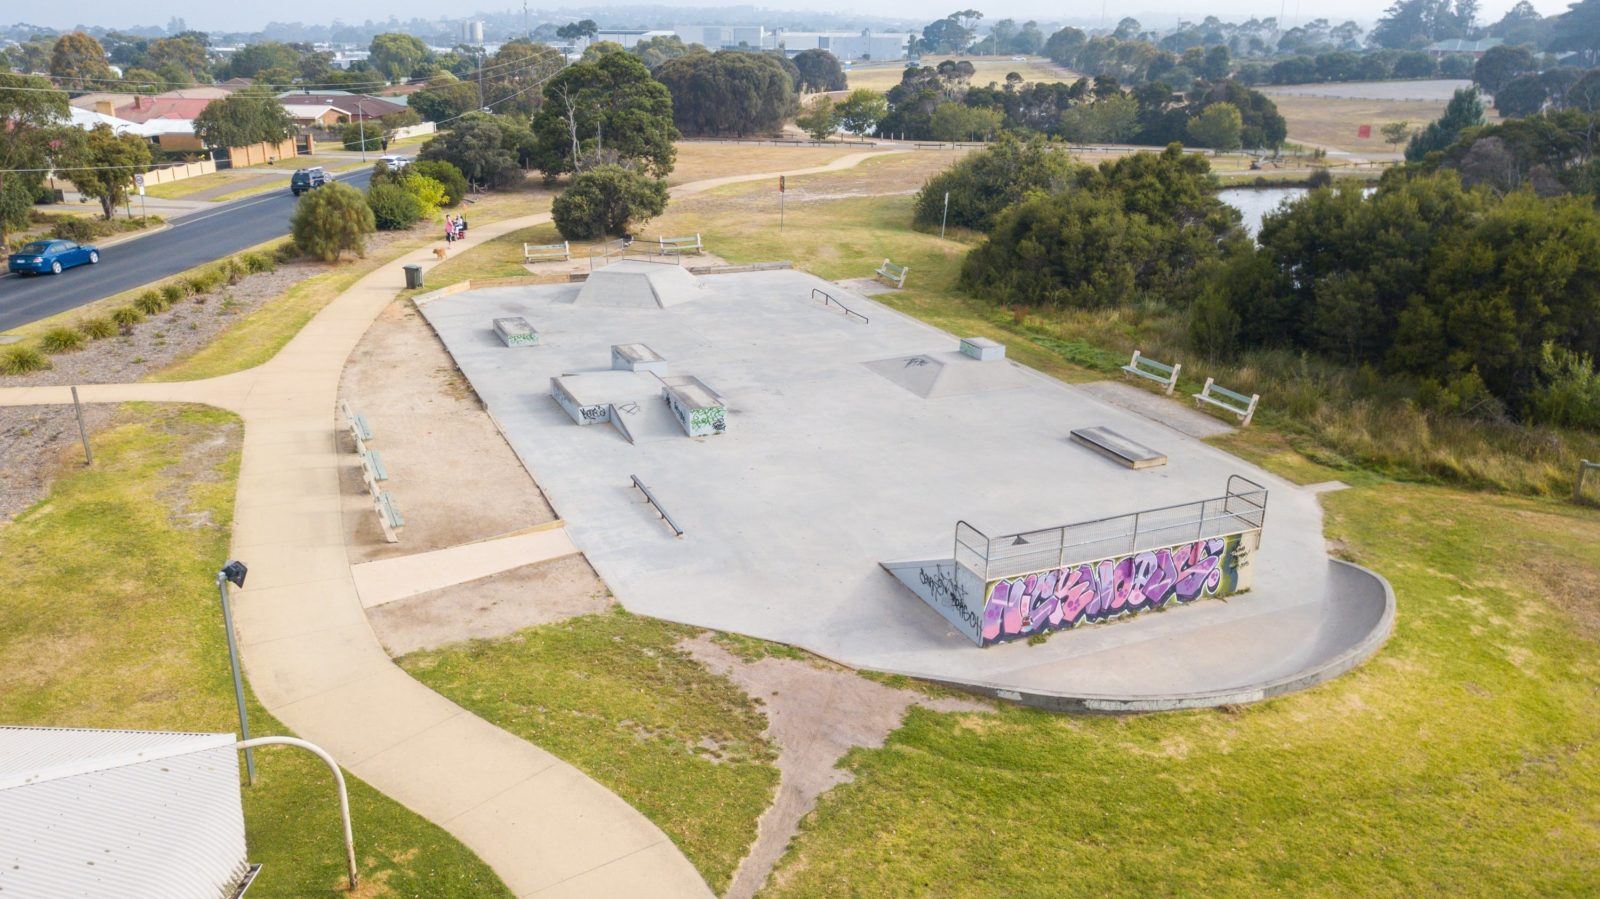 Mornington Skate Park